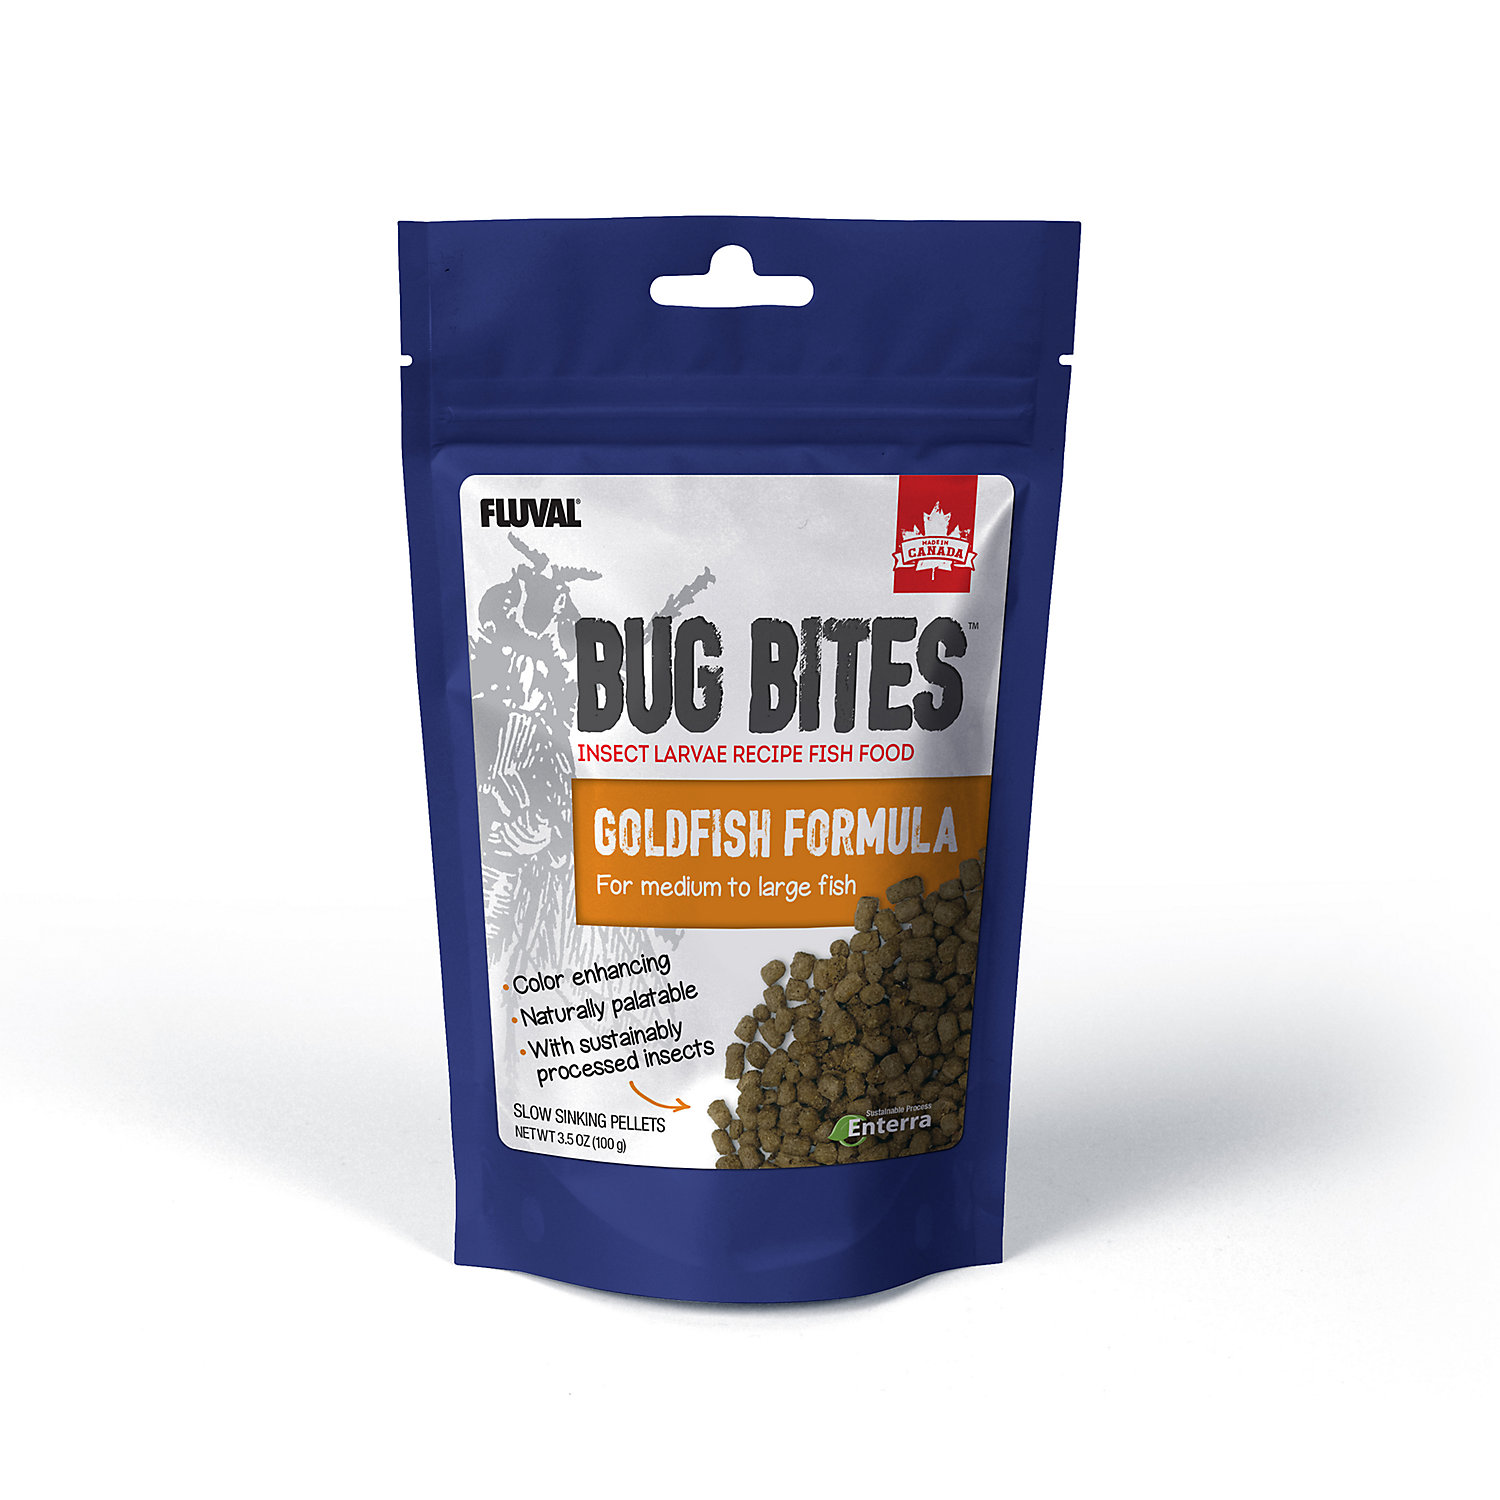 Fluval Bug Bites Pellets For Medium Large Goldfish 3.53oz